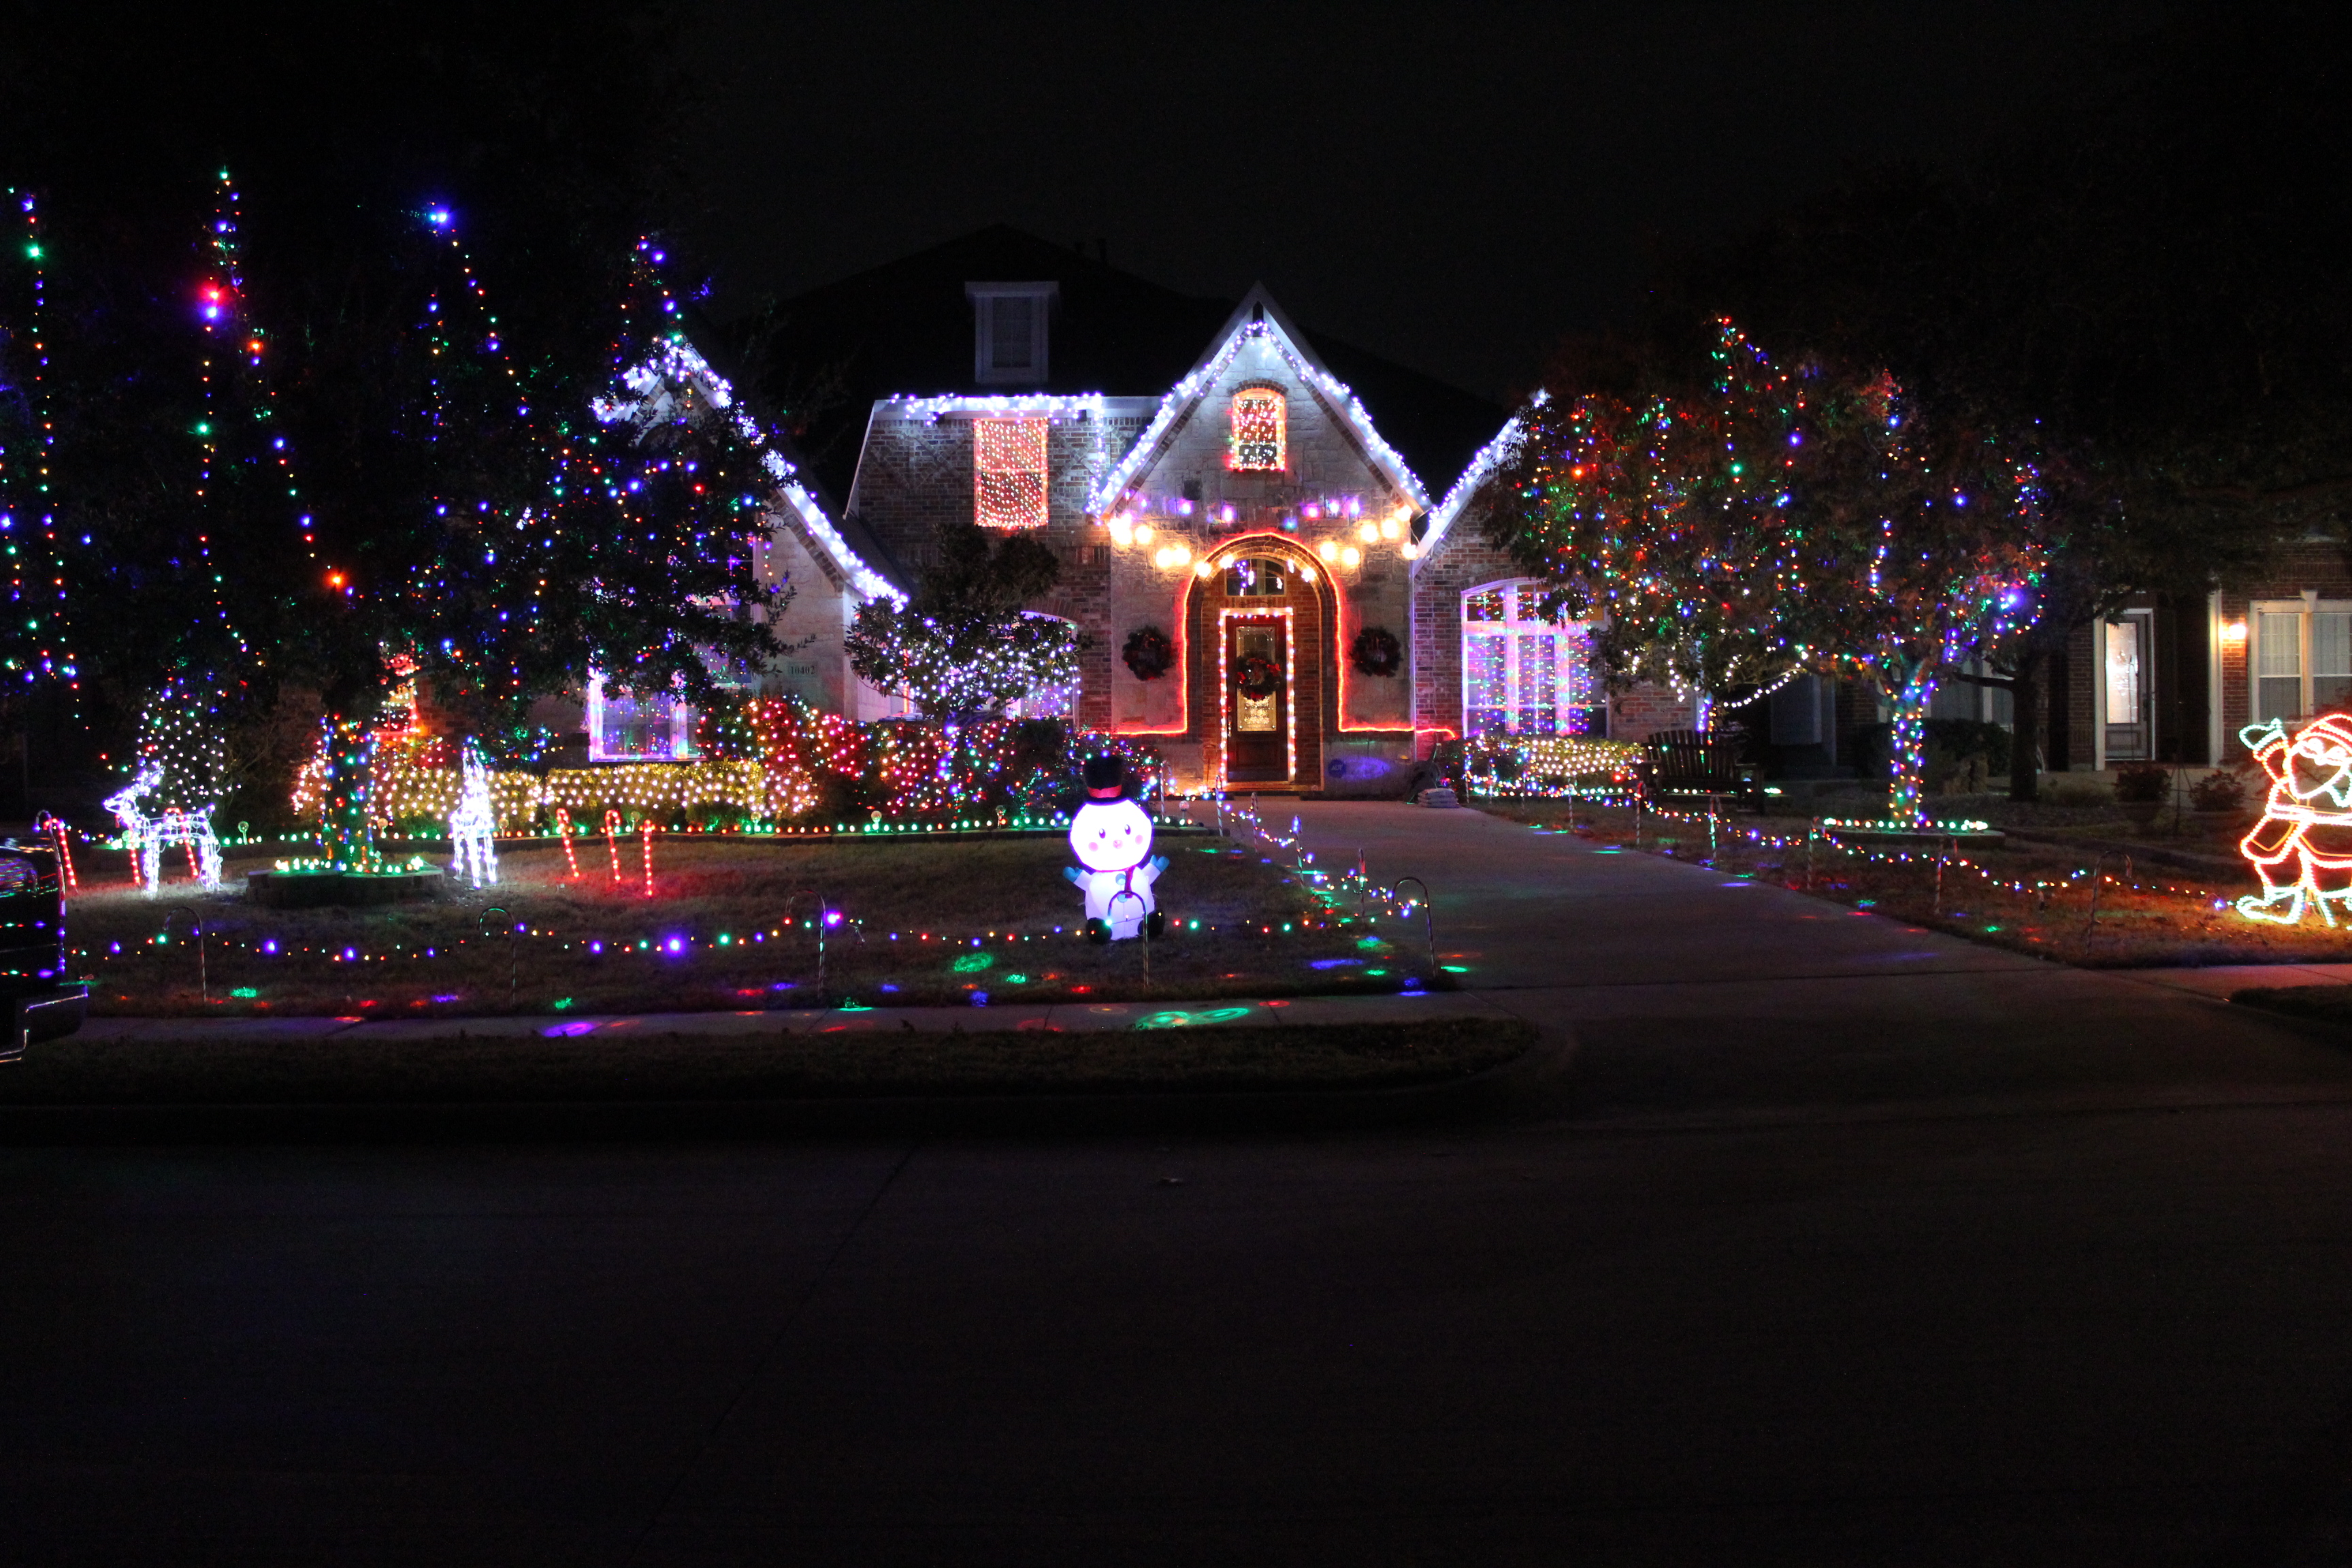 Lights at 10402 Fairway Visa Drive